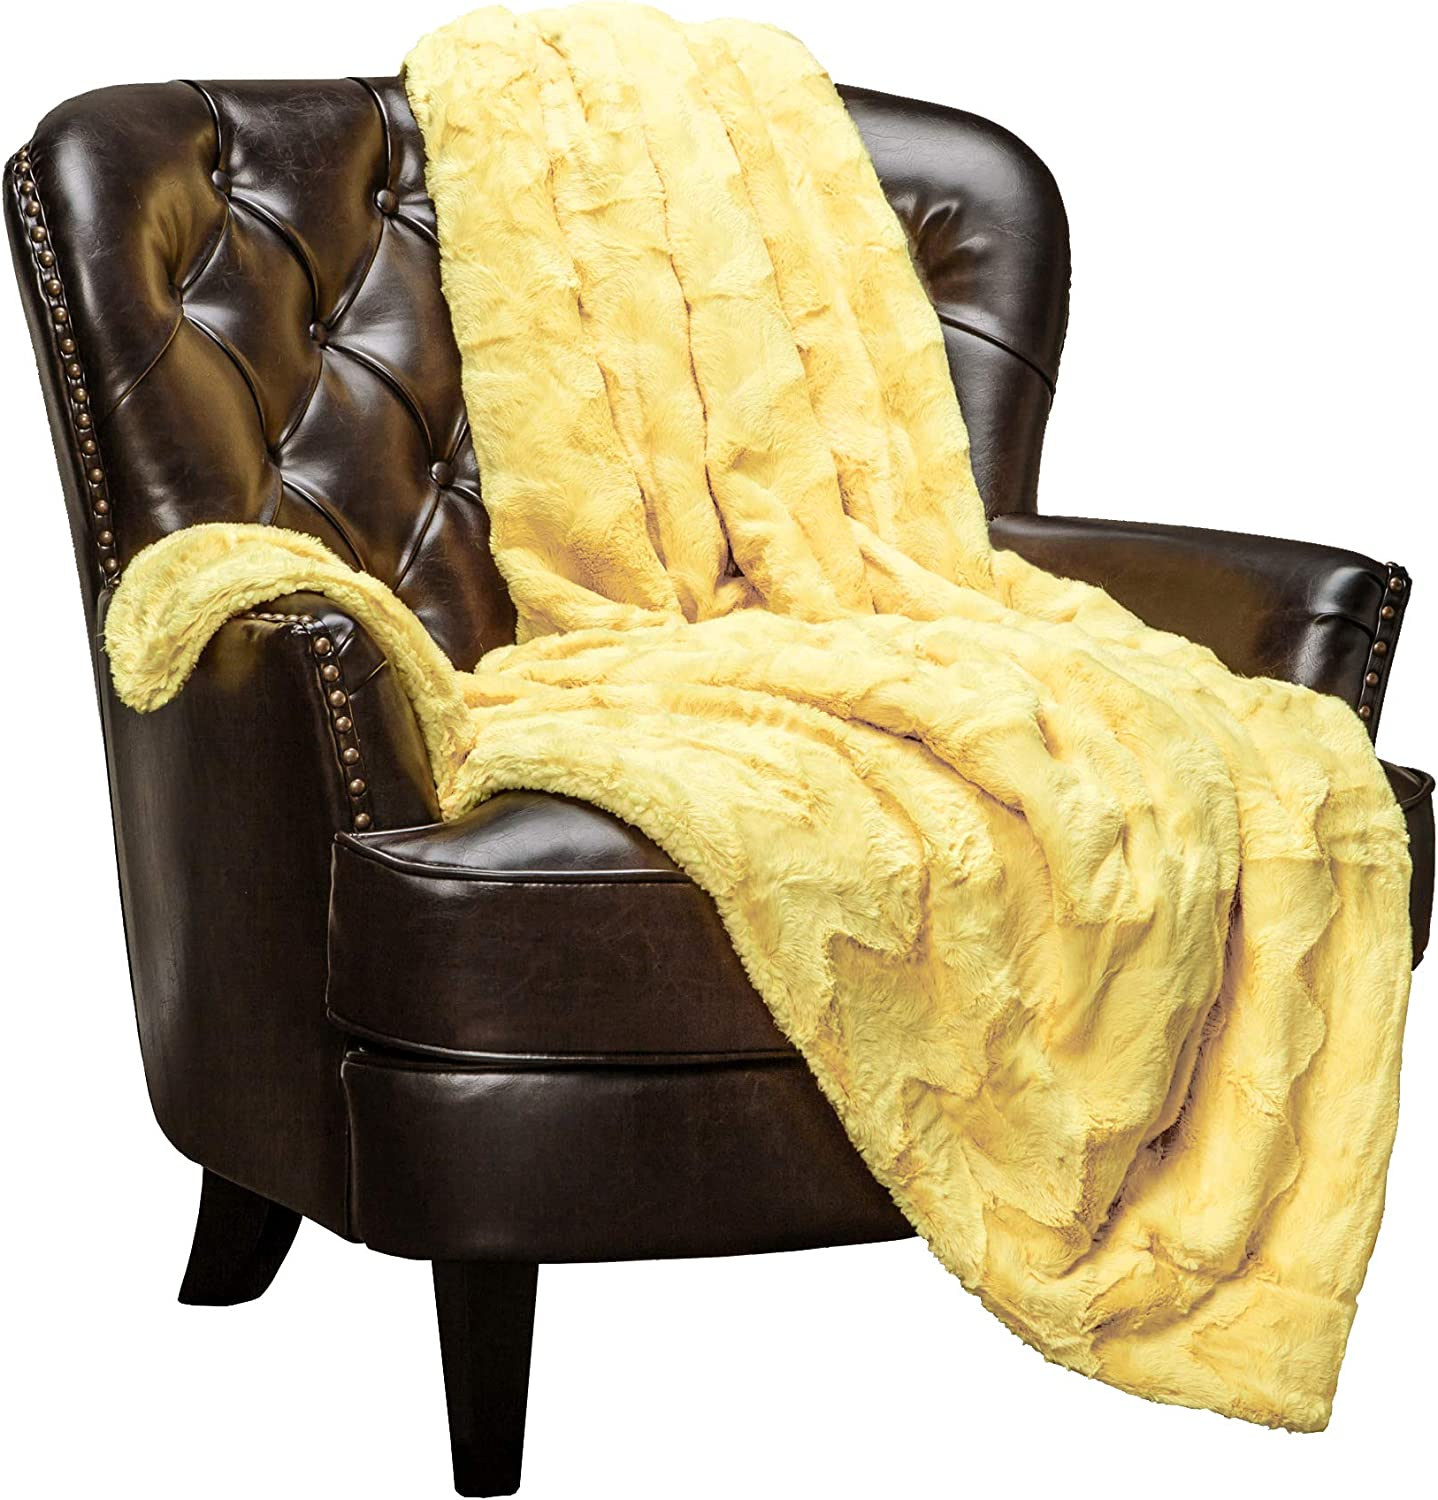 "Chanasya Fur Throw Blanket for Bed Couch Chair Daybed - Soft Wave Embossed Pattern - Warm Elegant Cozy Fuzzy Fluffy Faux Fur Plush Suitable for Fall Winter Summer Spring (50"" x 65"") - Yellow Blanket"